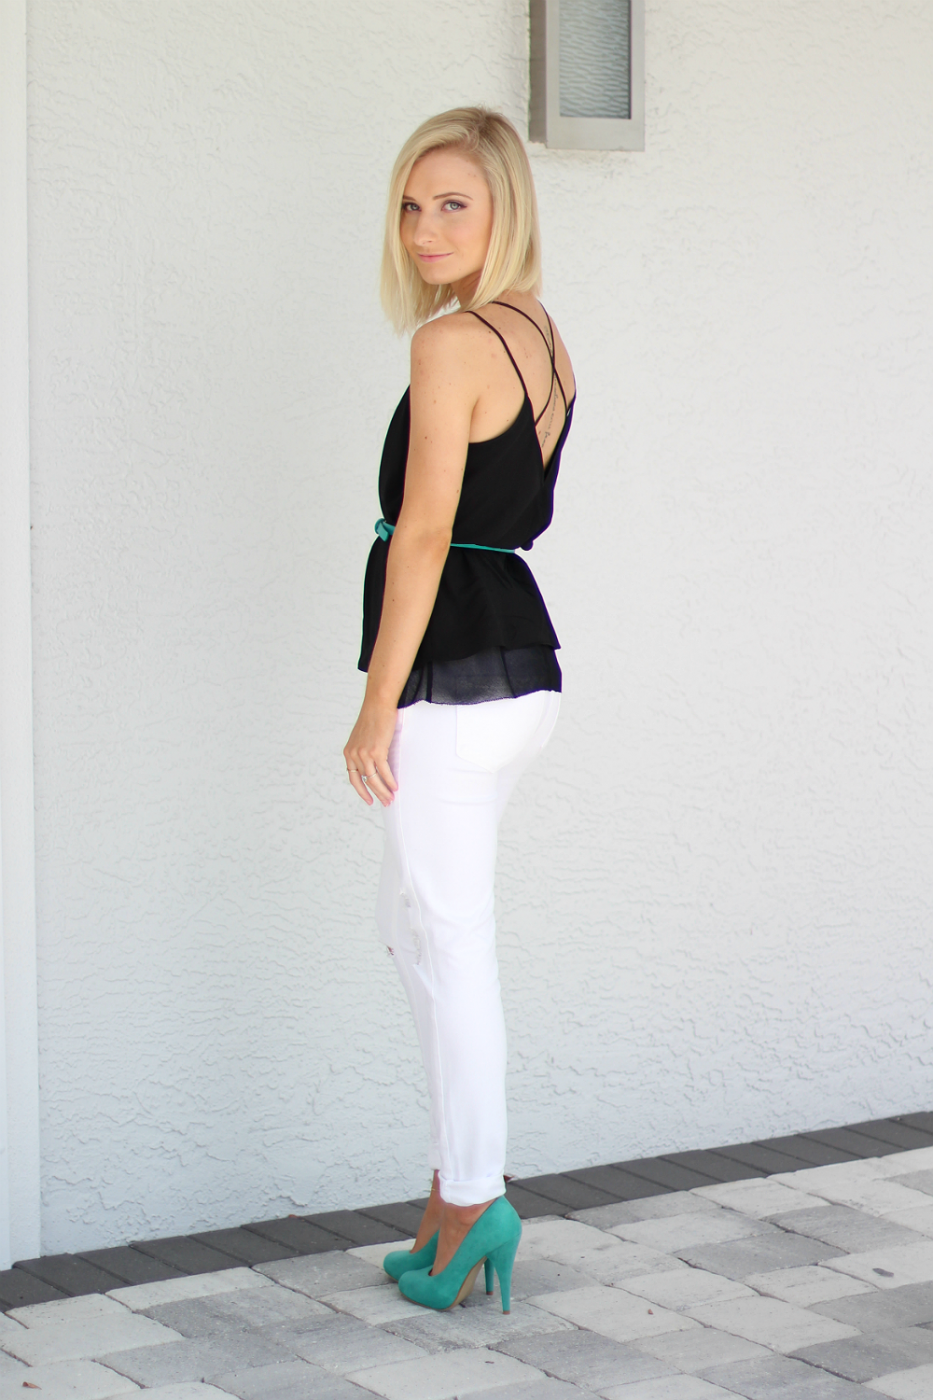 White jean, teal accessories, and a criss cross back top